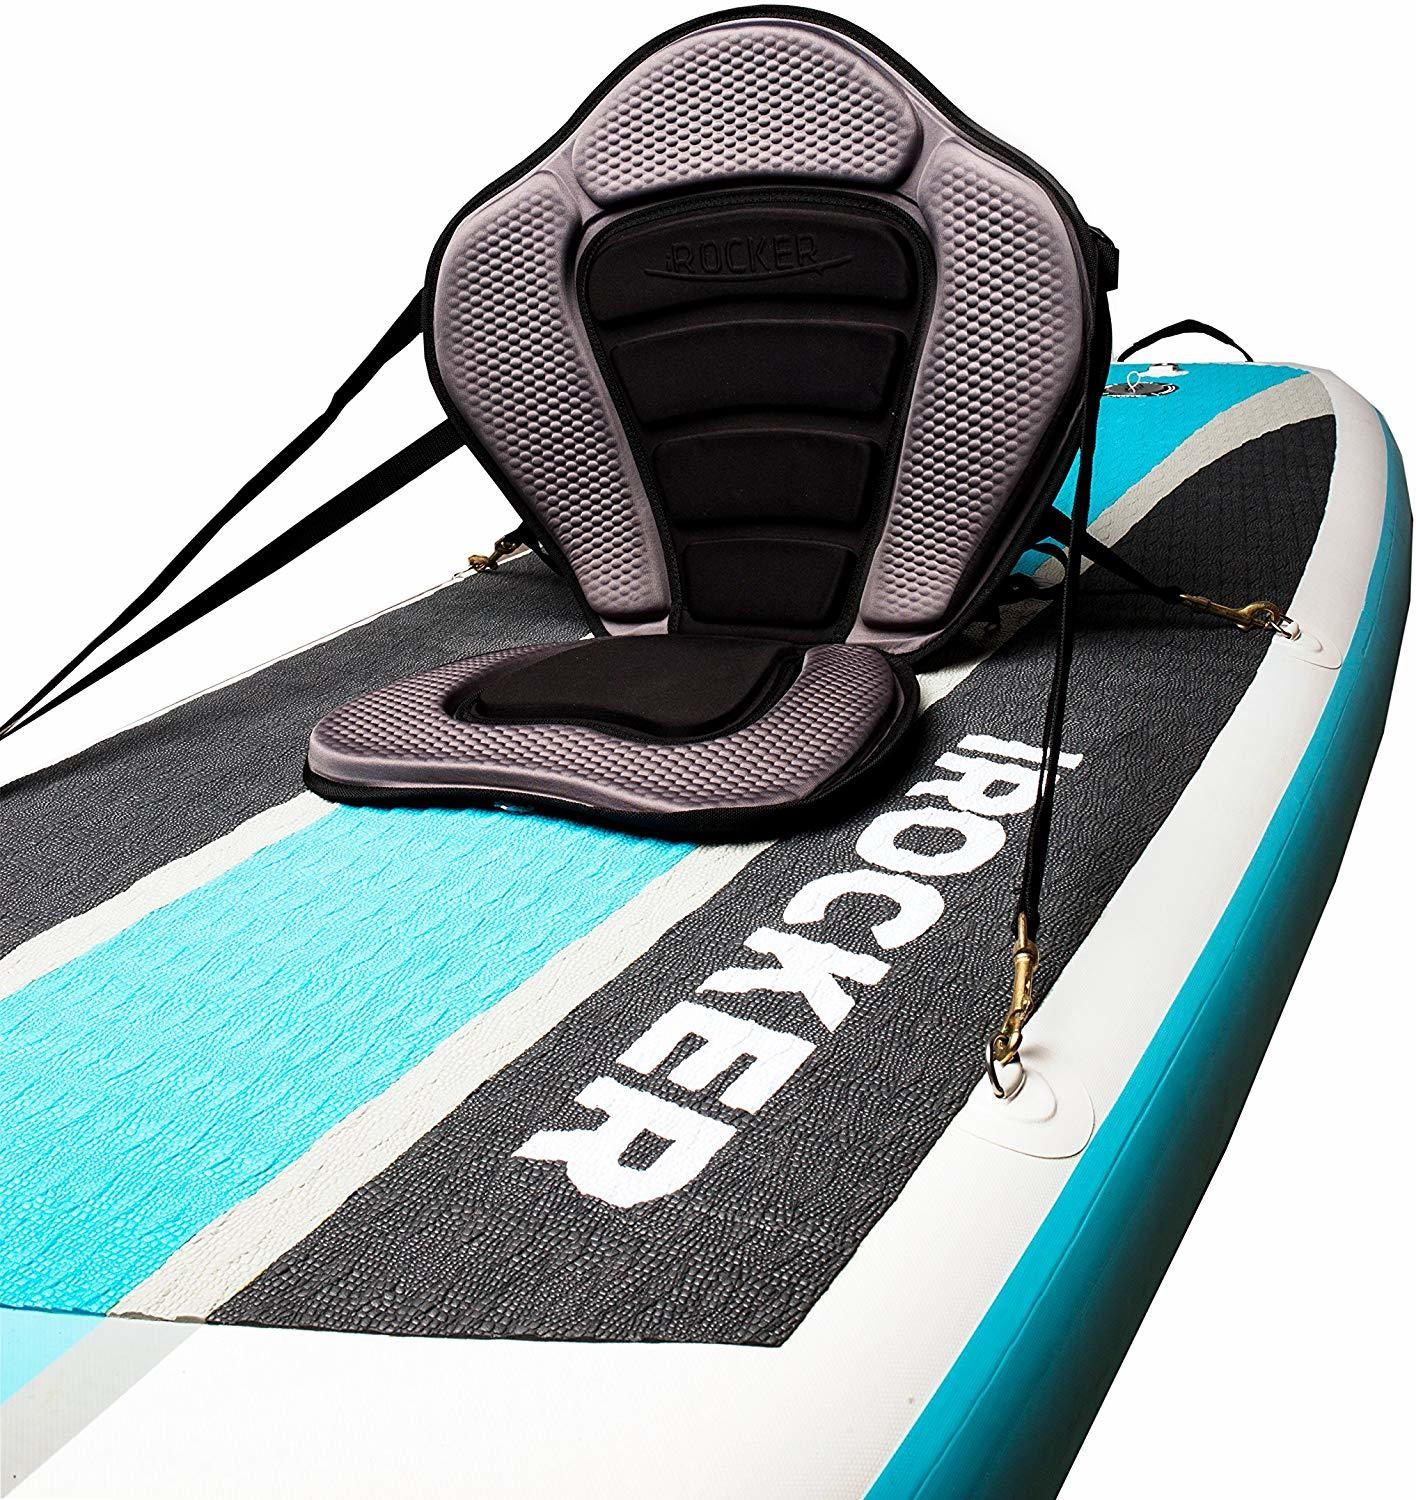 The 7 Best Paddleboard Seat that Will Ensure Your Comfort while Sailing 2